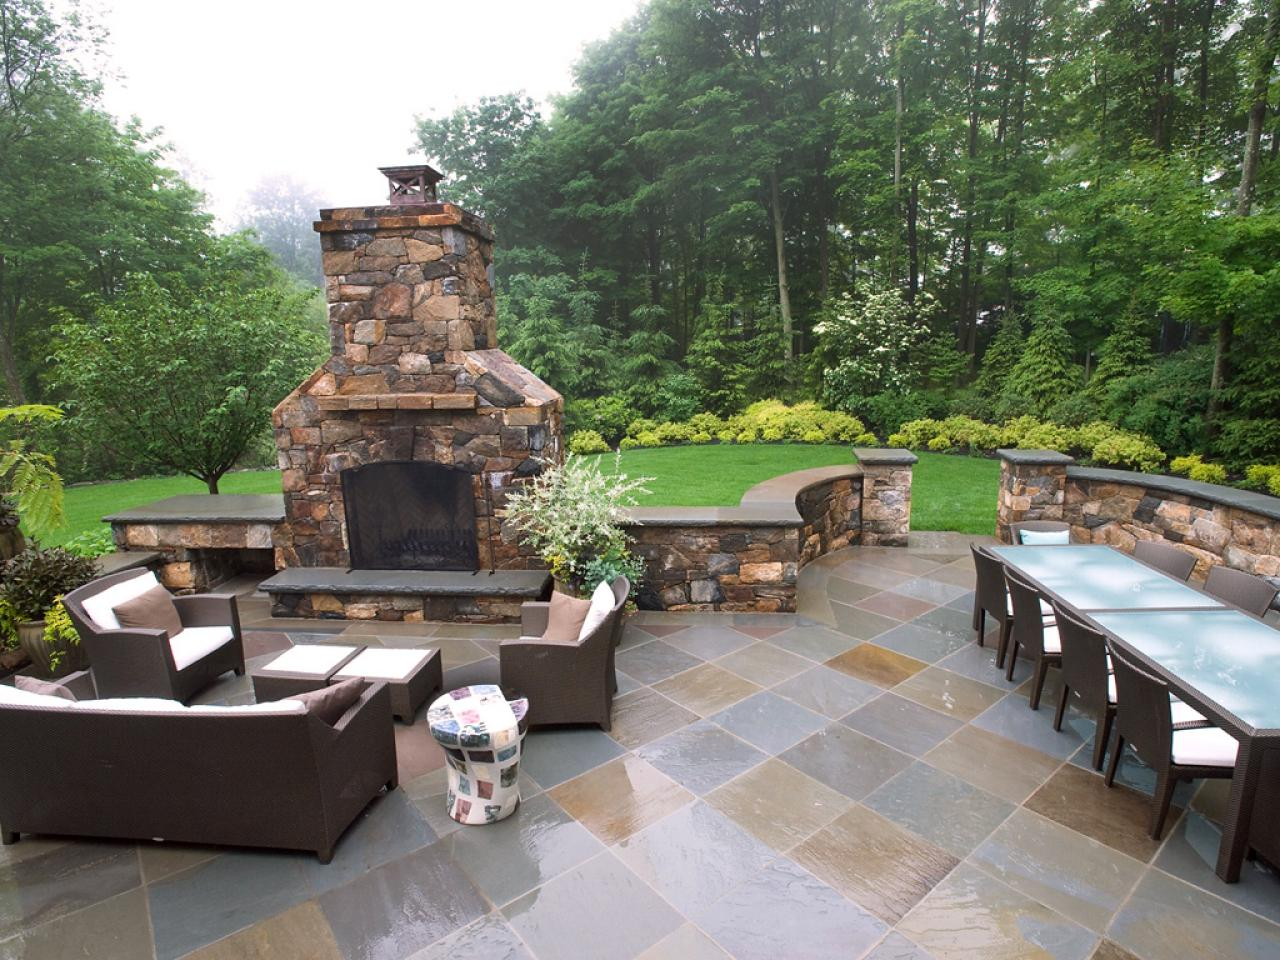 How to plan for building an outdoor fireplace hgtv for Outdoor patio fireplace ideas